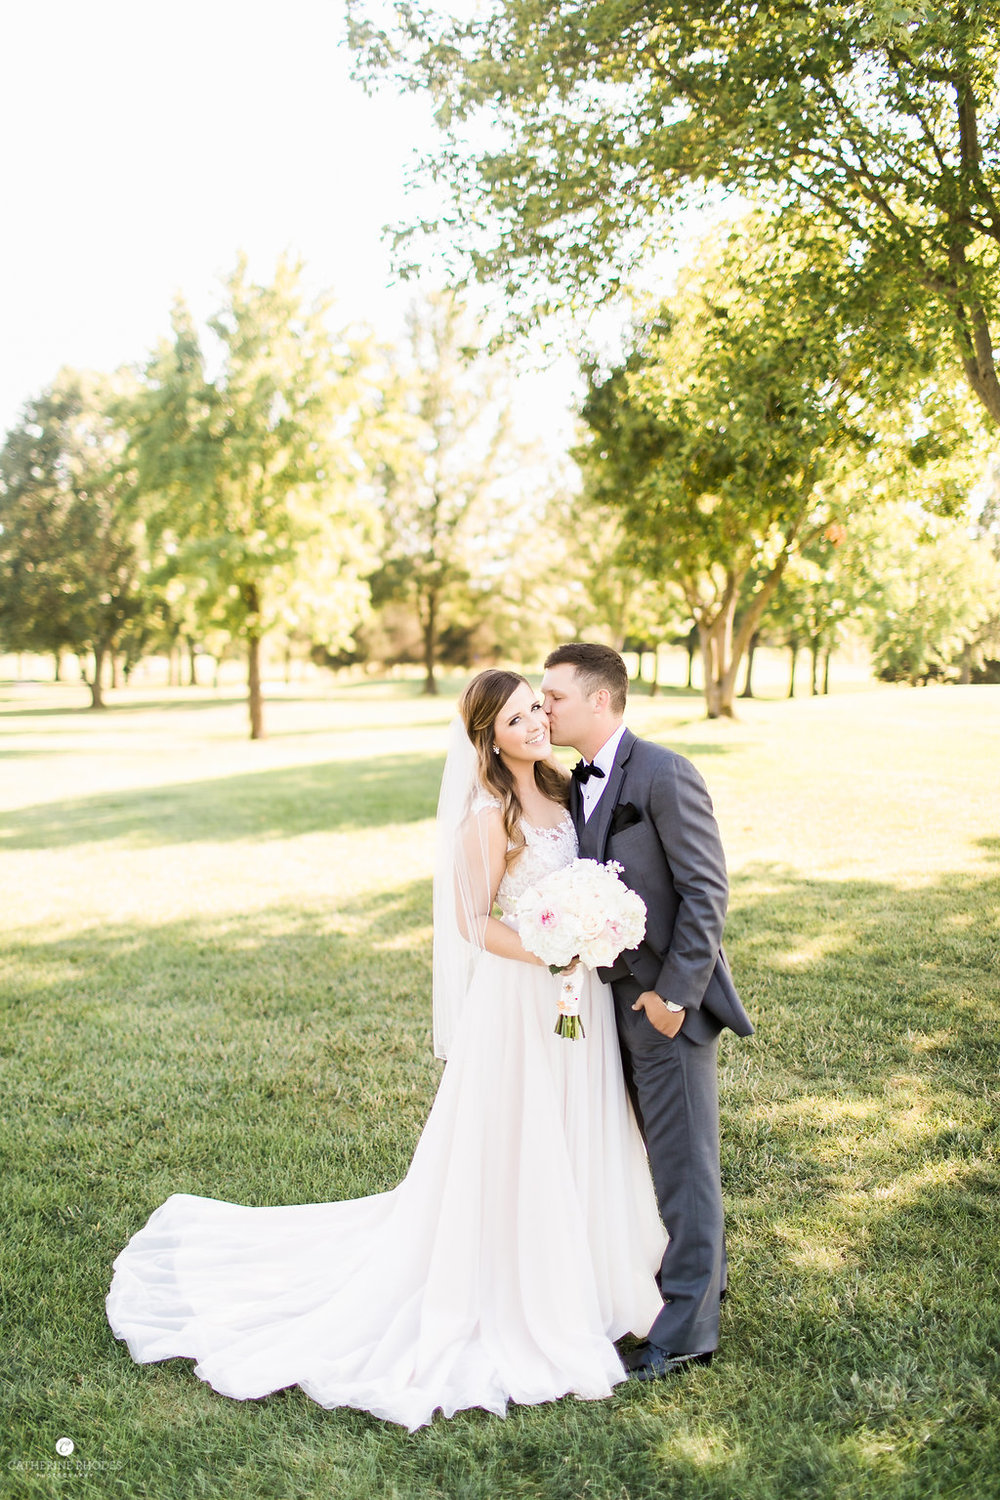 CountryClubofMissouriWedding_AnnaDrew_Portraits_CatherineRhodesPhotography(219of332)-Edit.jpg